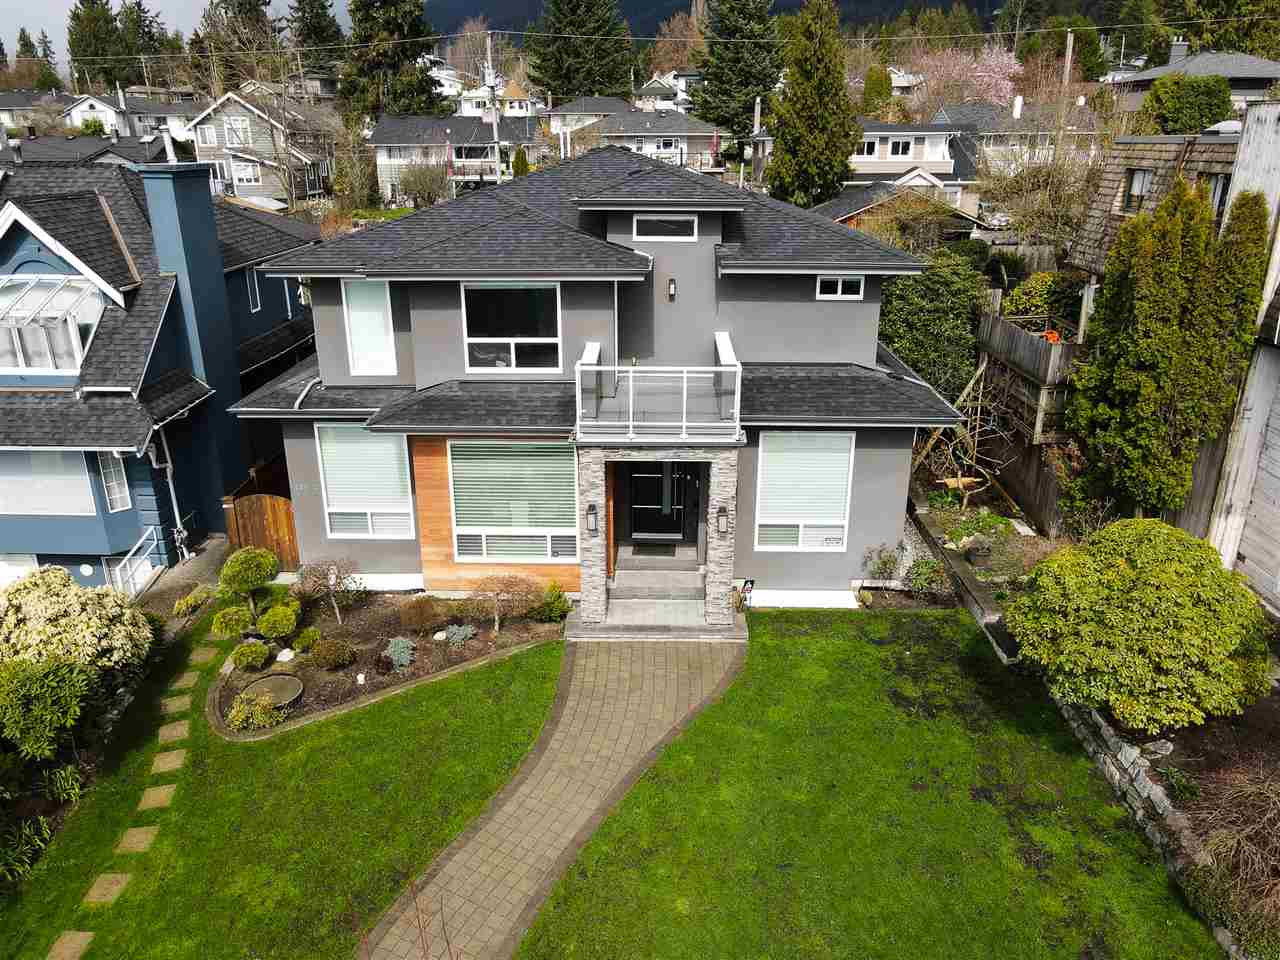 238 W 26TH STREET - Upper Lonsdale House/Single Family for sale, 7 Bedrooms (R2560532) - #29